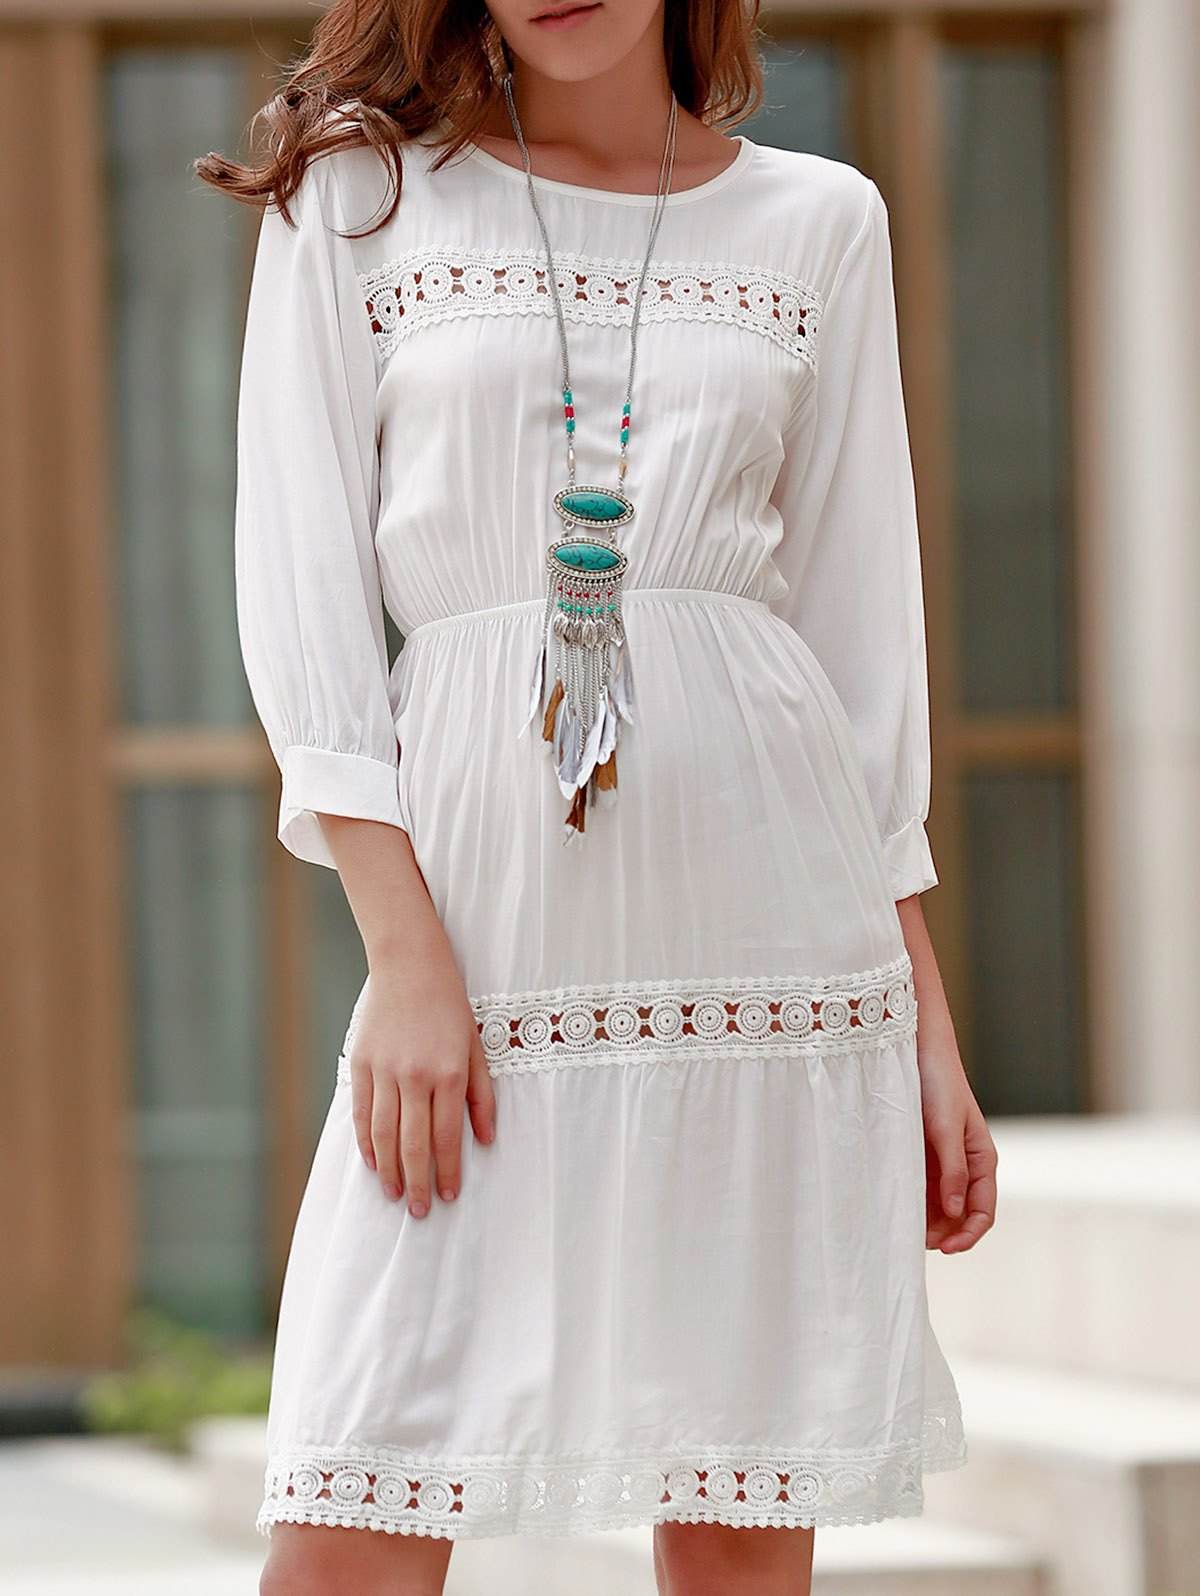 Ladylike Round Collar 3/4 Sleeve White Hollow Out Women's Dress